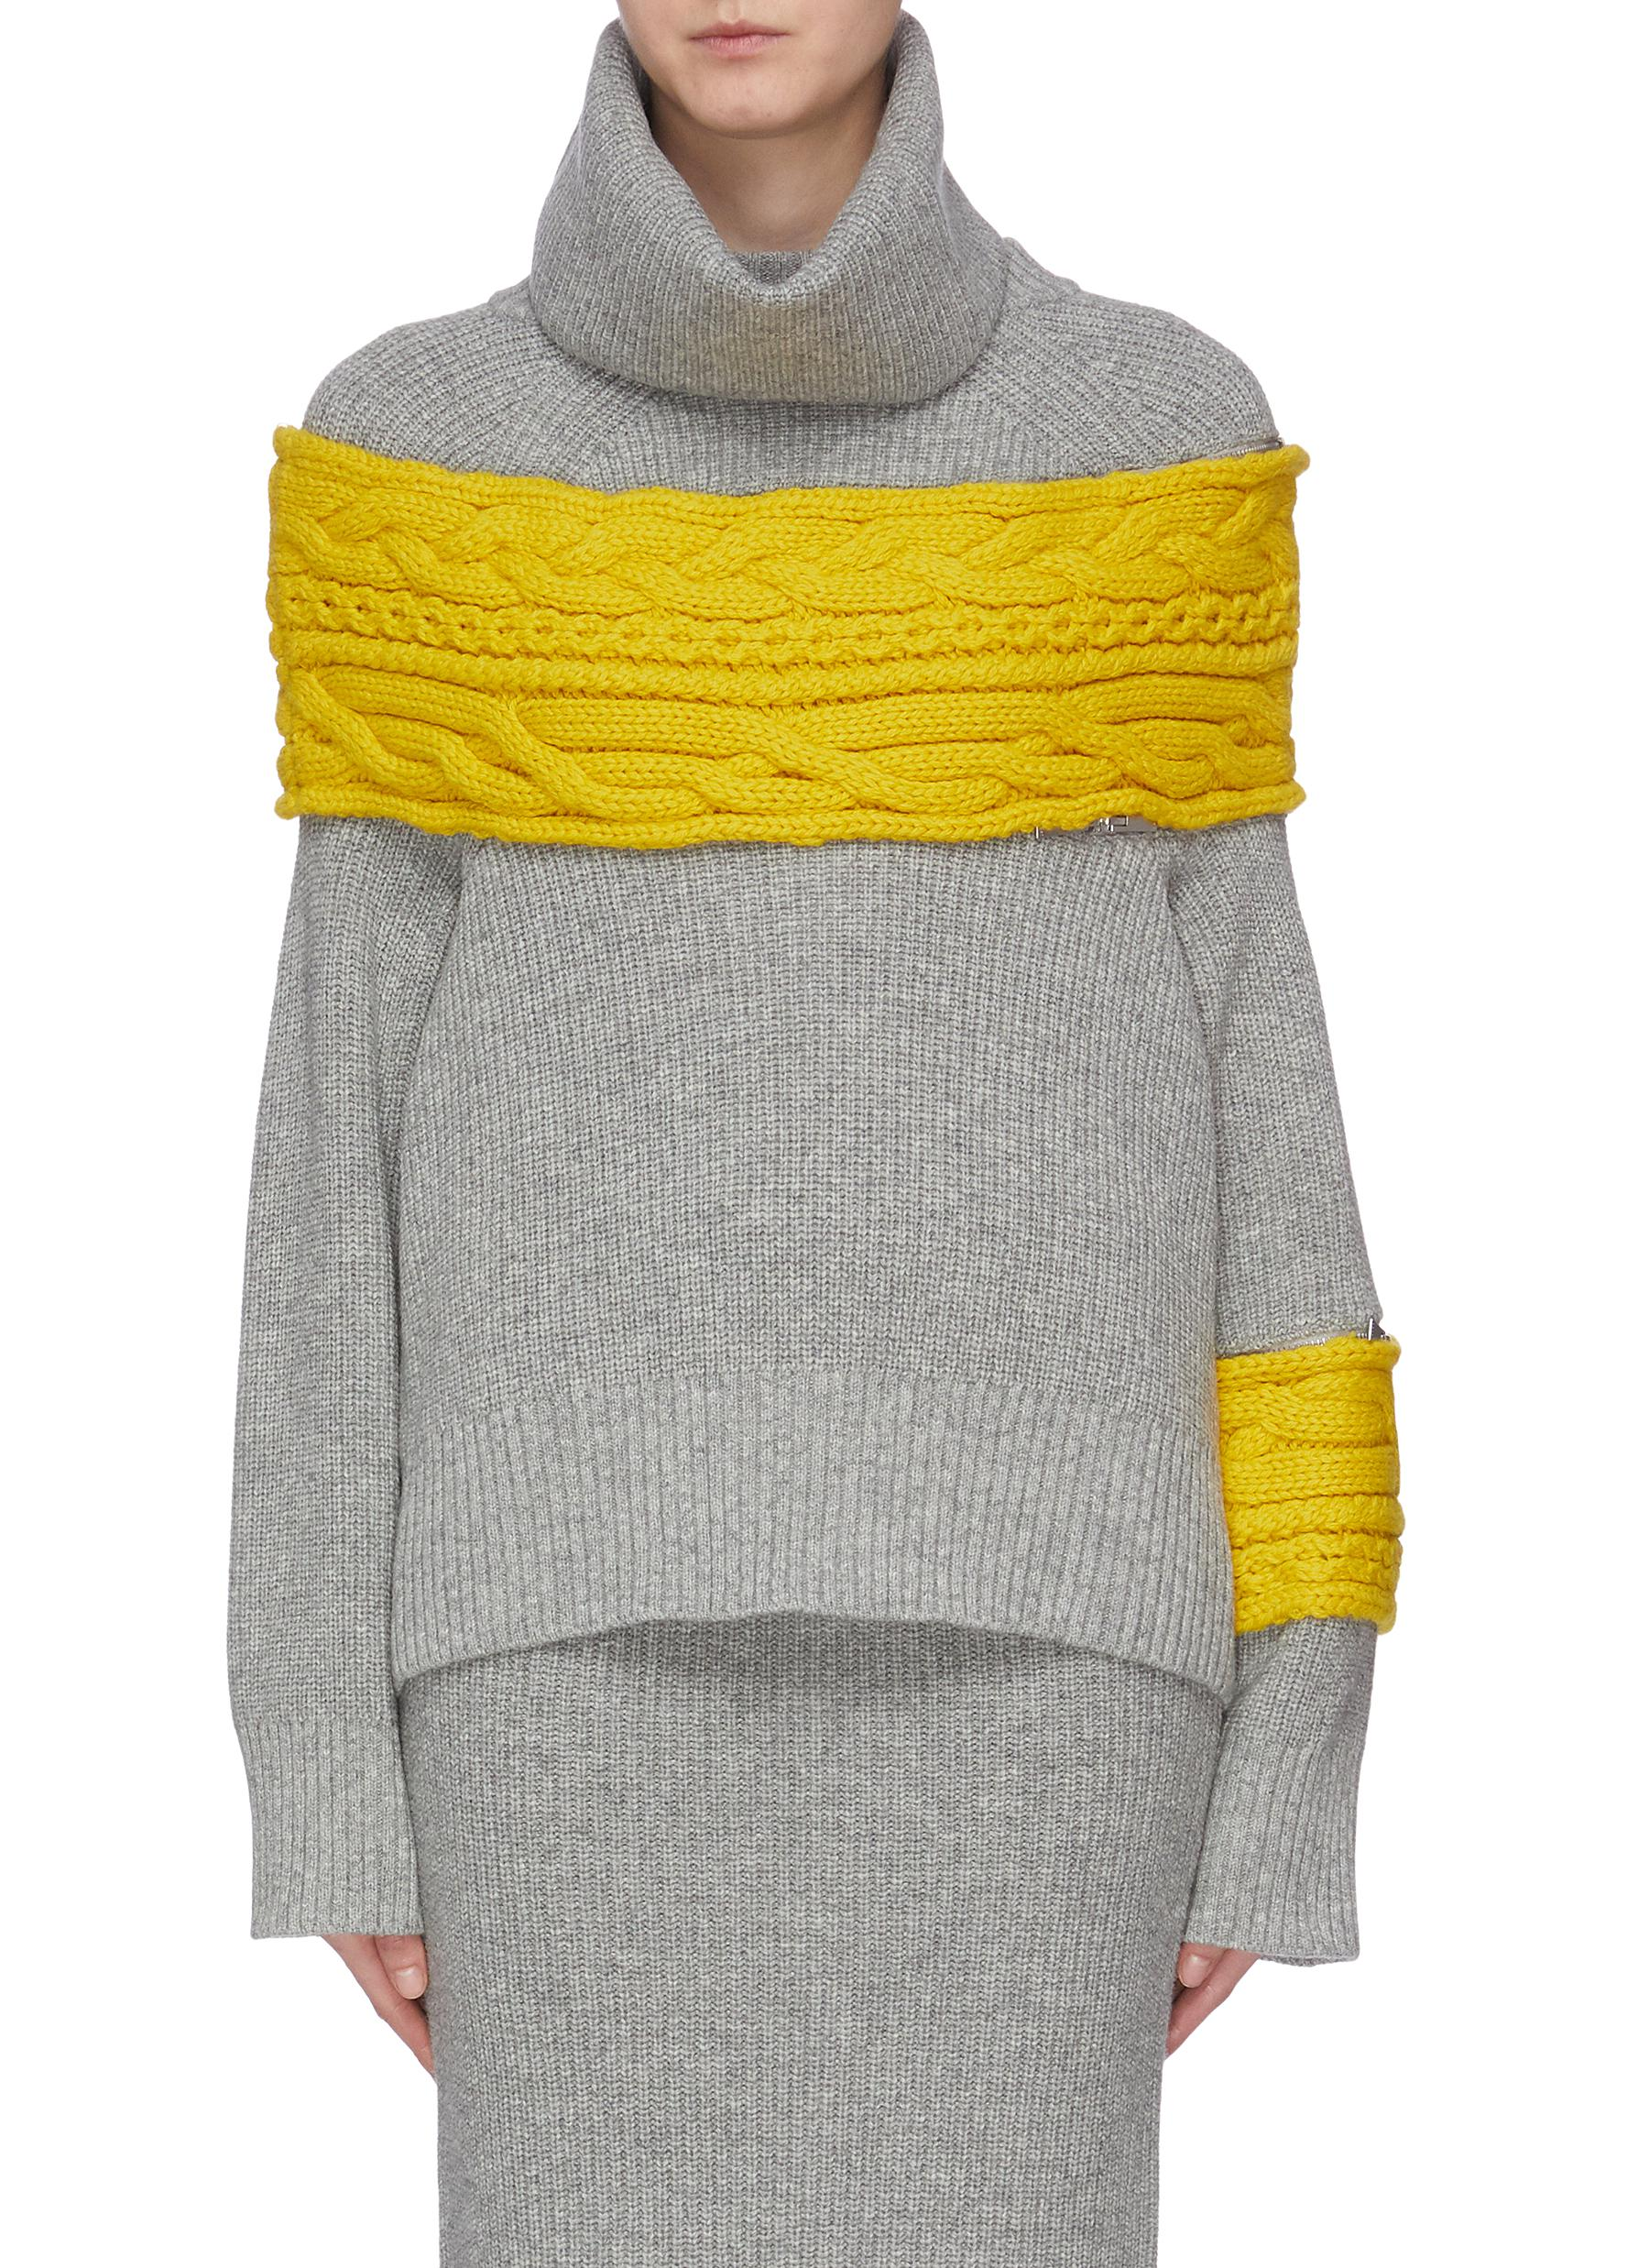 Detachable turtleneck cable knit panel zip sleeve sweater by Sacai